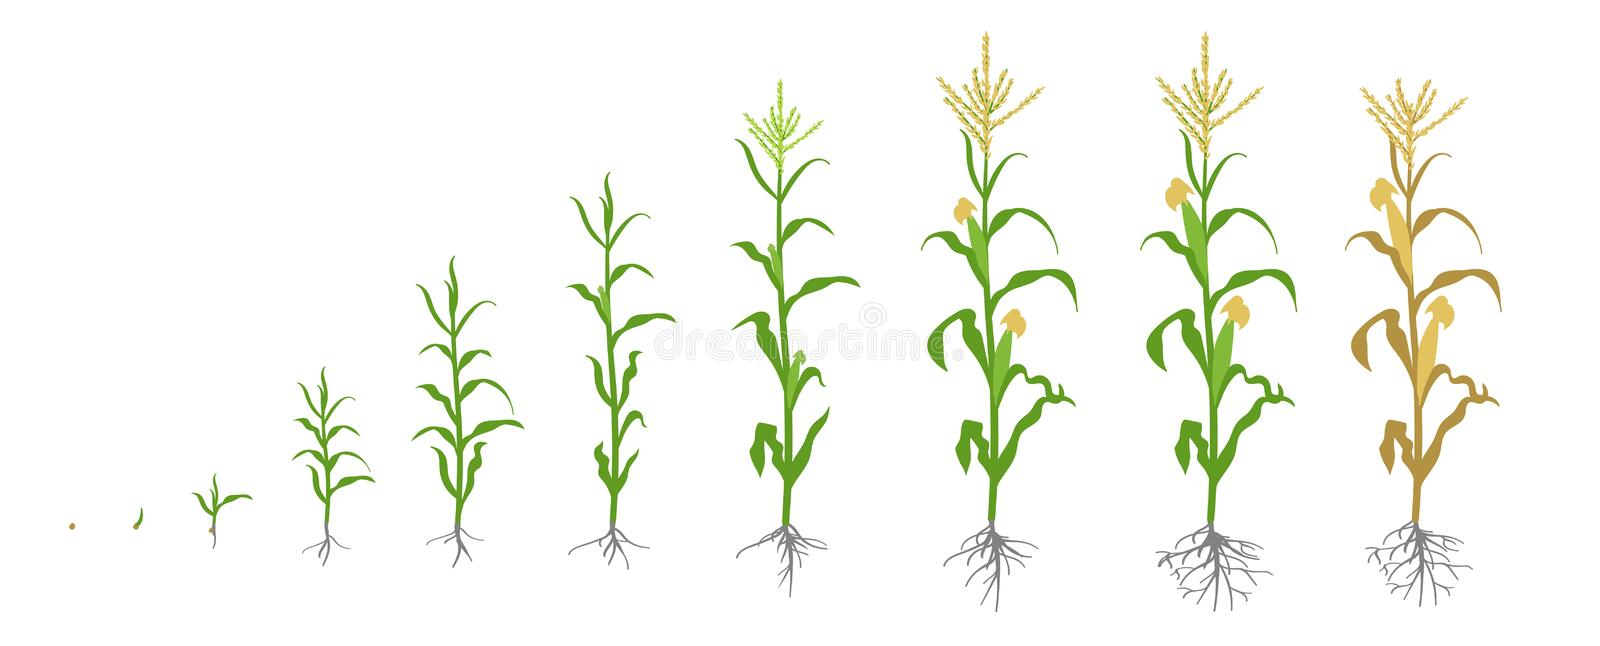 Growth stages of Maize plant. Corn phases. Vector illustration. Zea mays. Ripening period. The life cycle. Use stock illustration